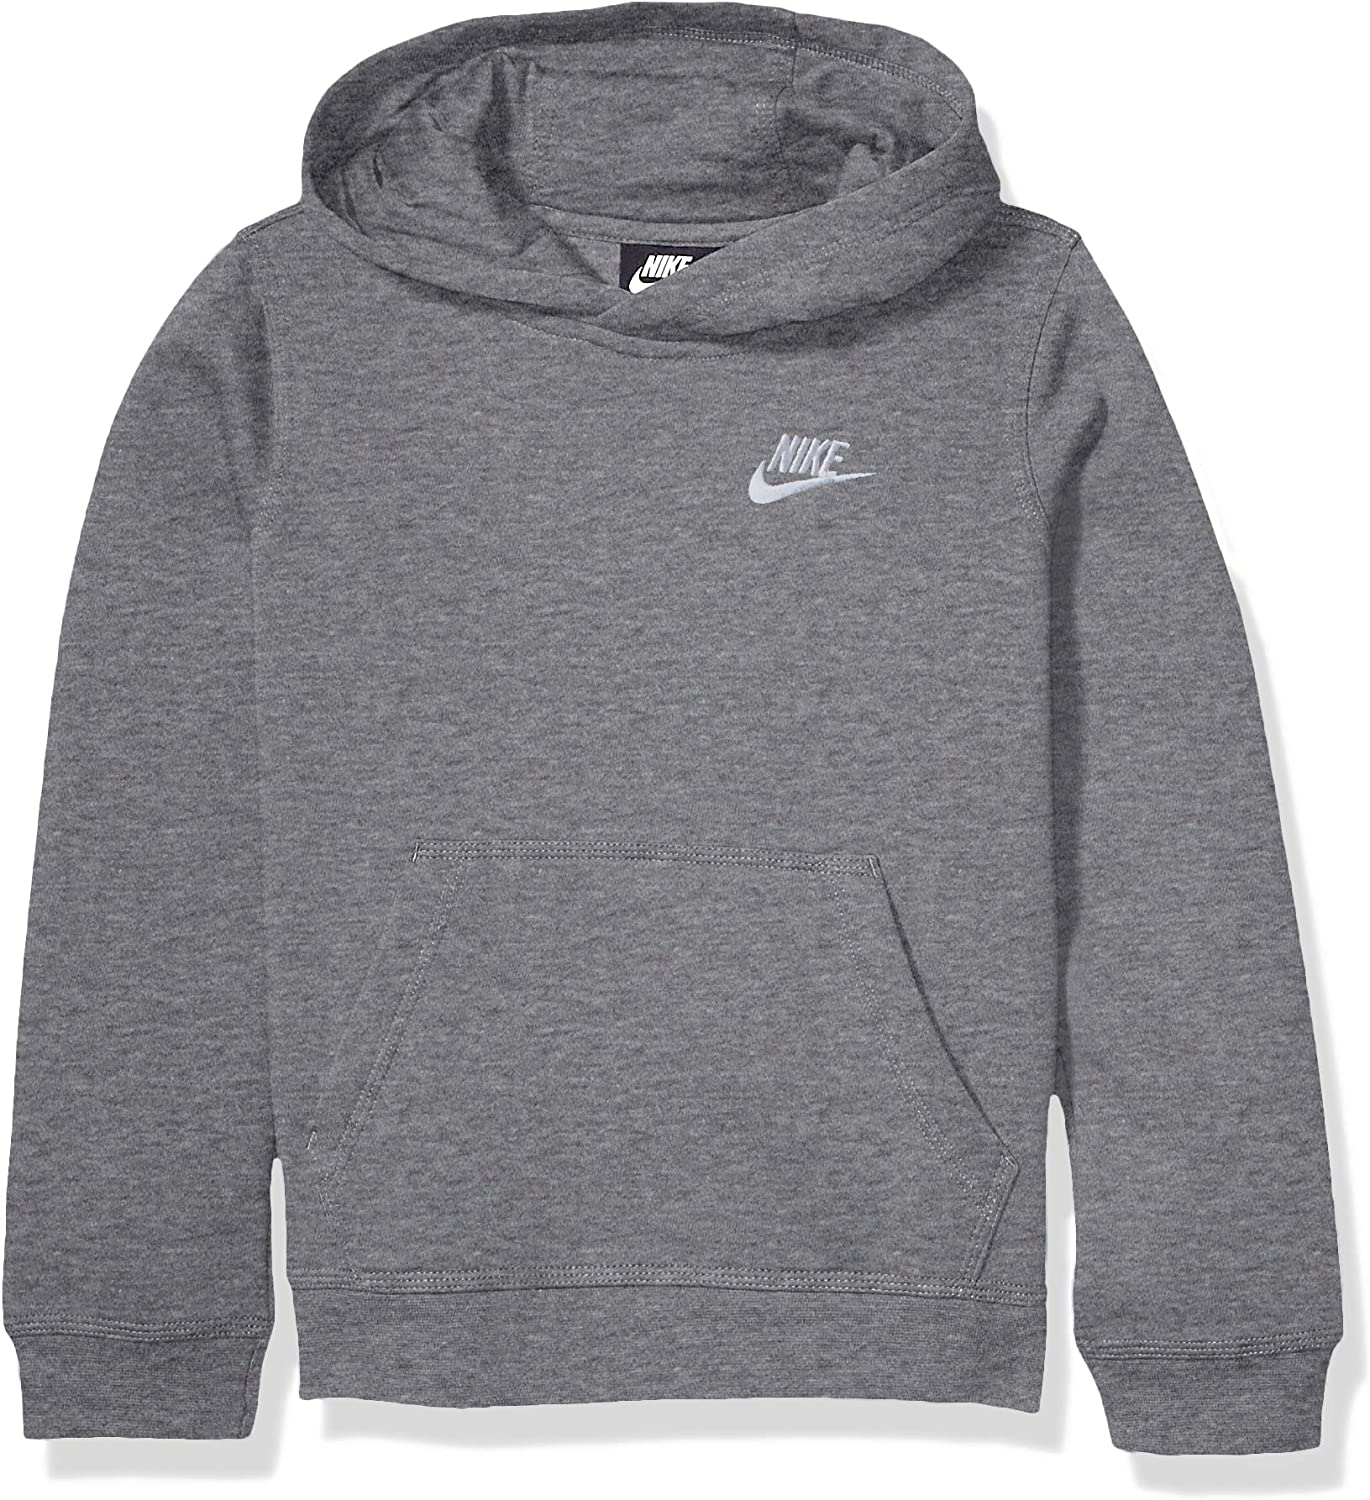 Nike Boys NSW Pull Over Hoodie Dealing full price reduction 2021 autumn and winter new Club